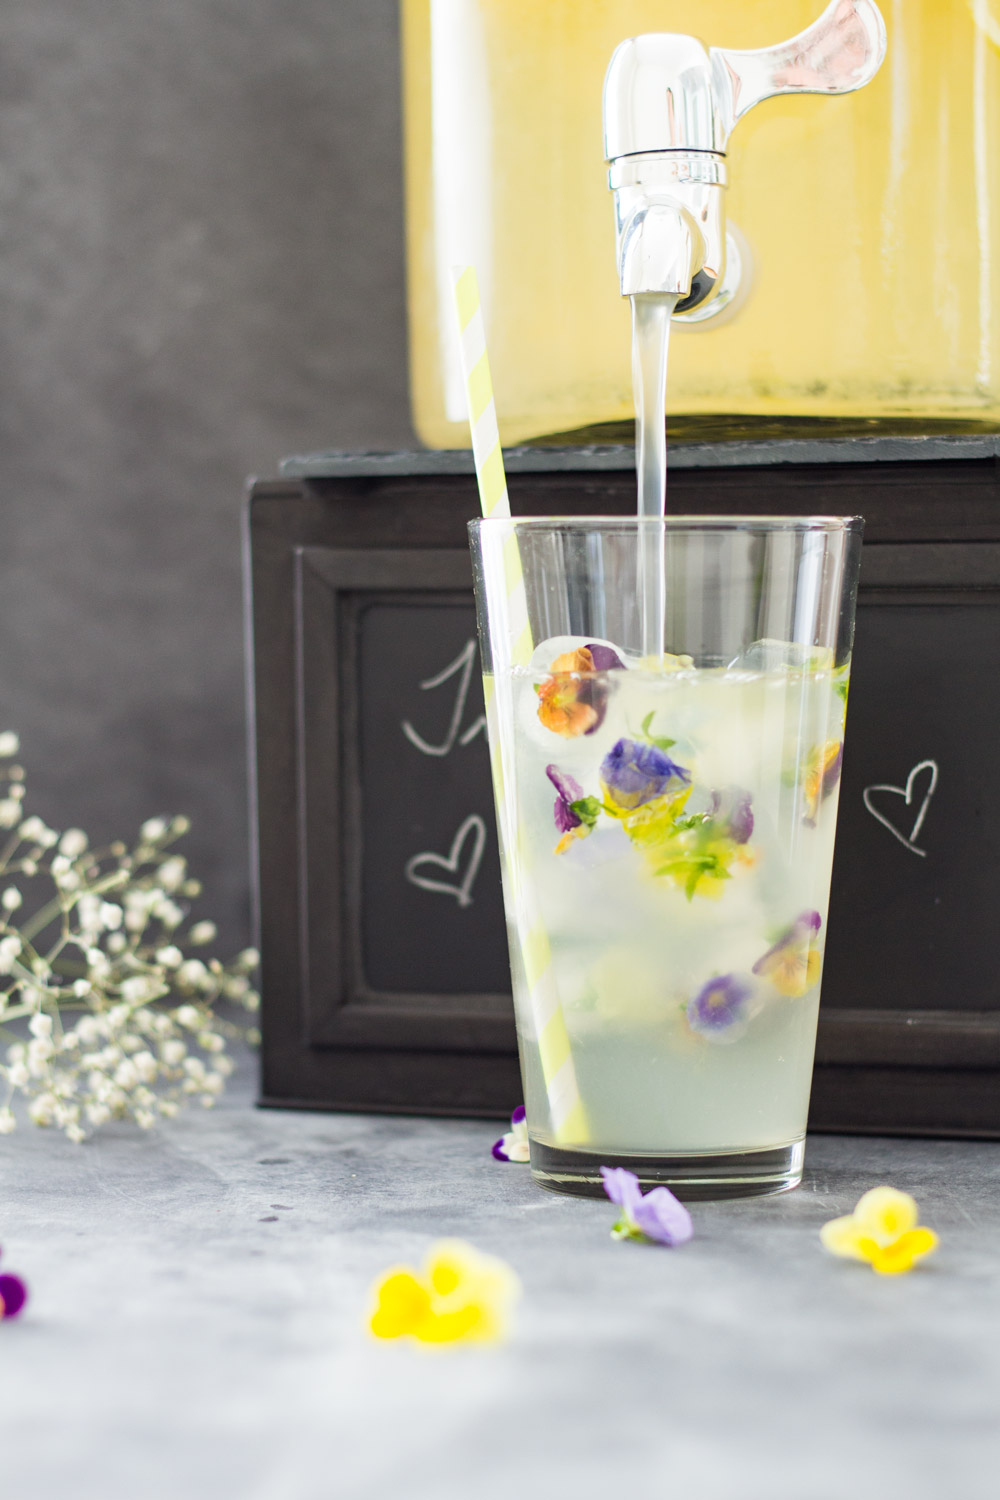 Lemon Infused Water with Edible Flowers - Recipes To Help Survive a Heatwave